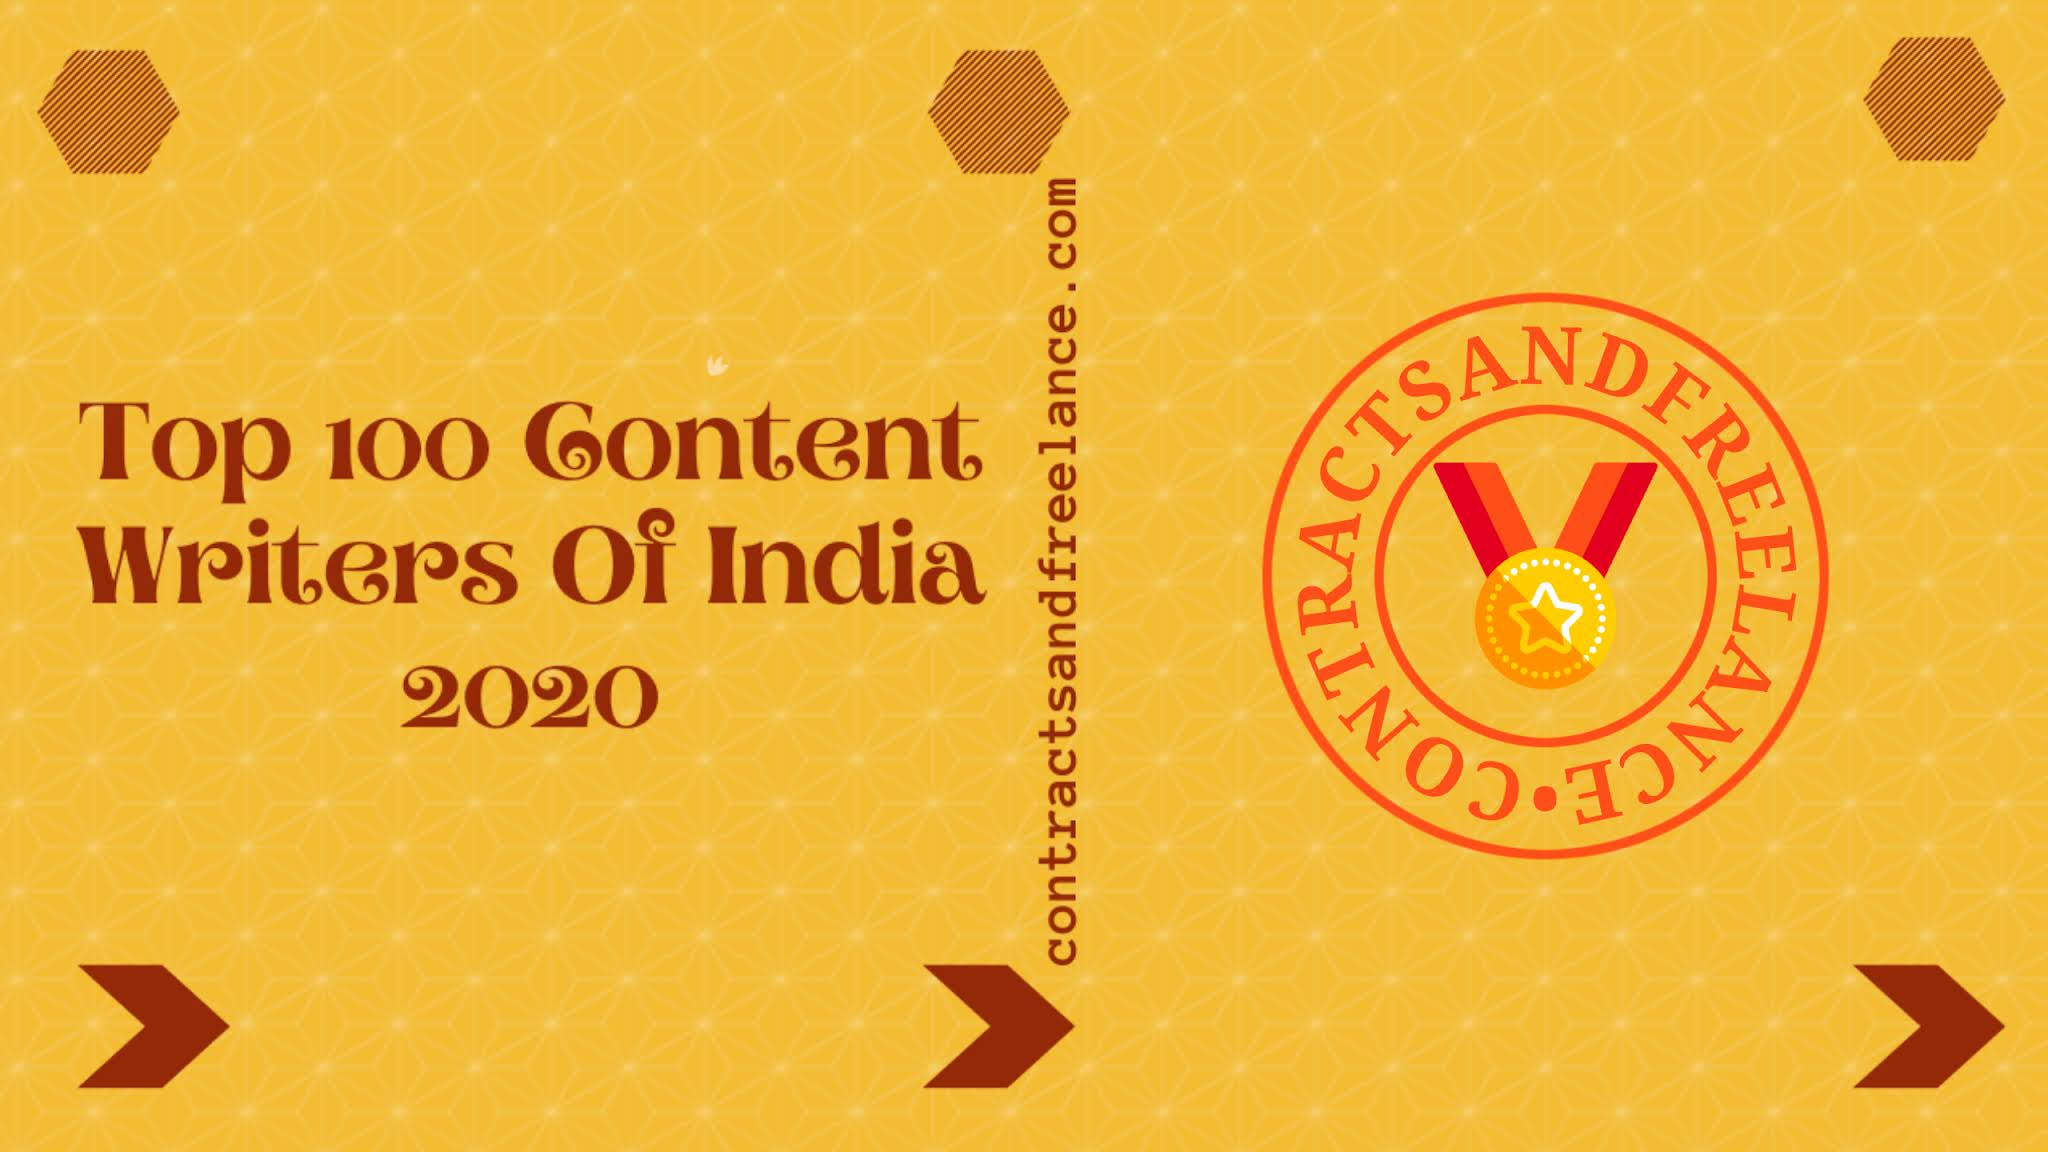 Top 100 Content Writers Of India 2020 | Linkedin Profile Rating List Of Best Content Writers In India